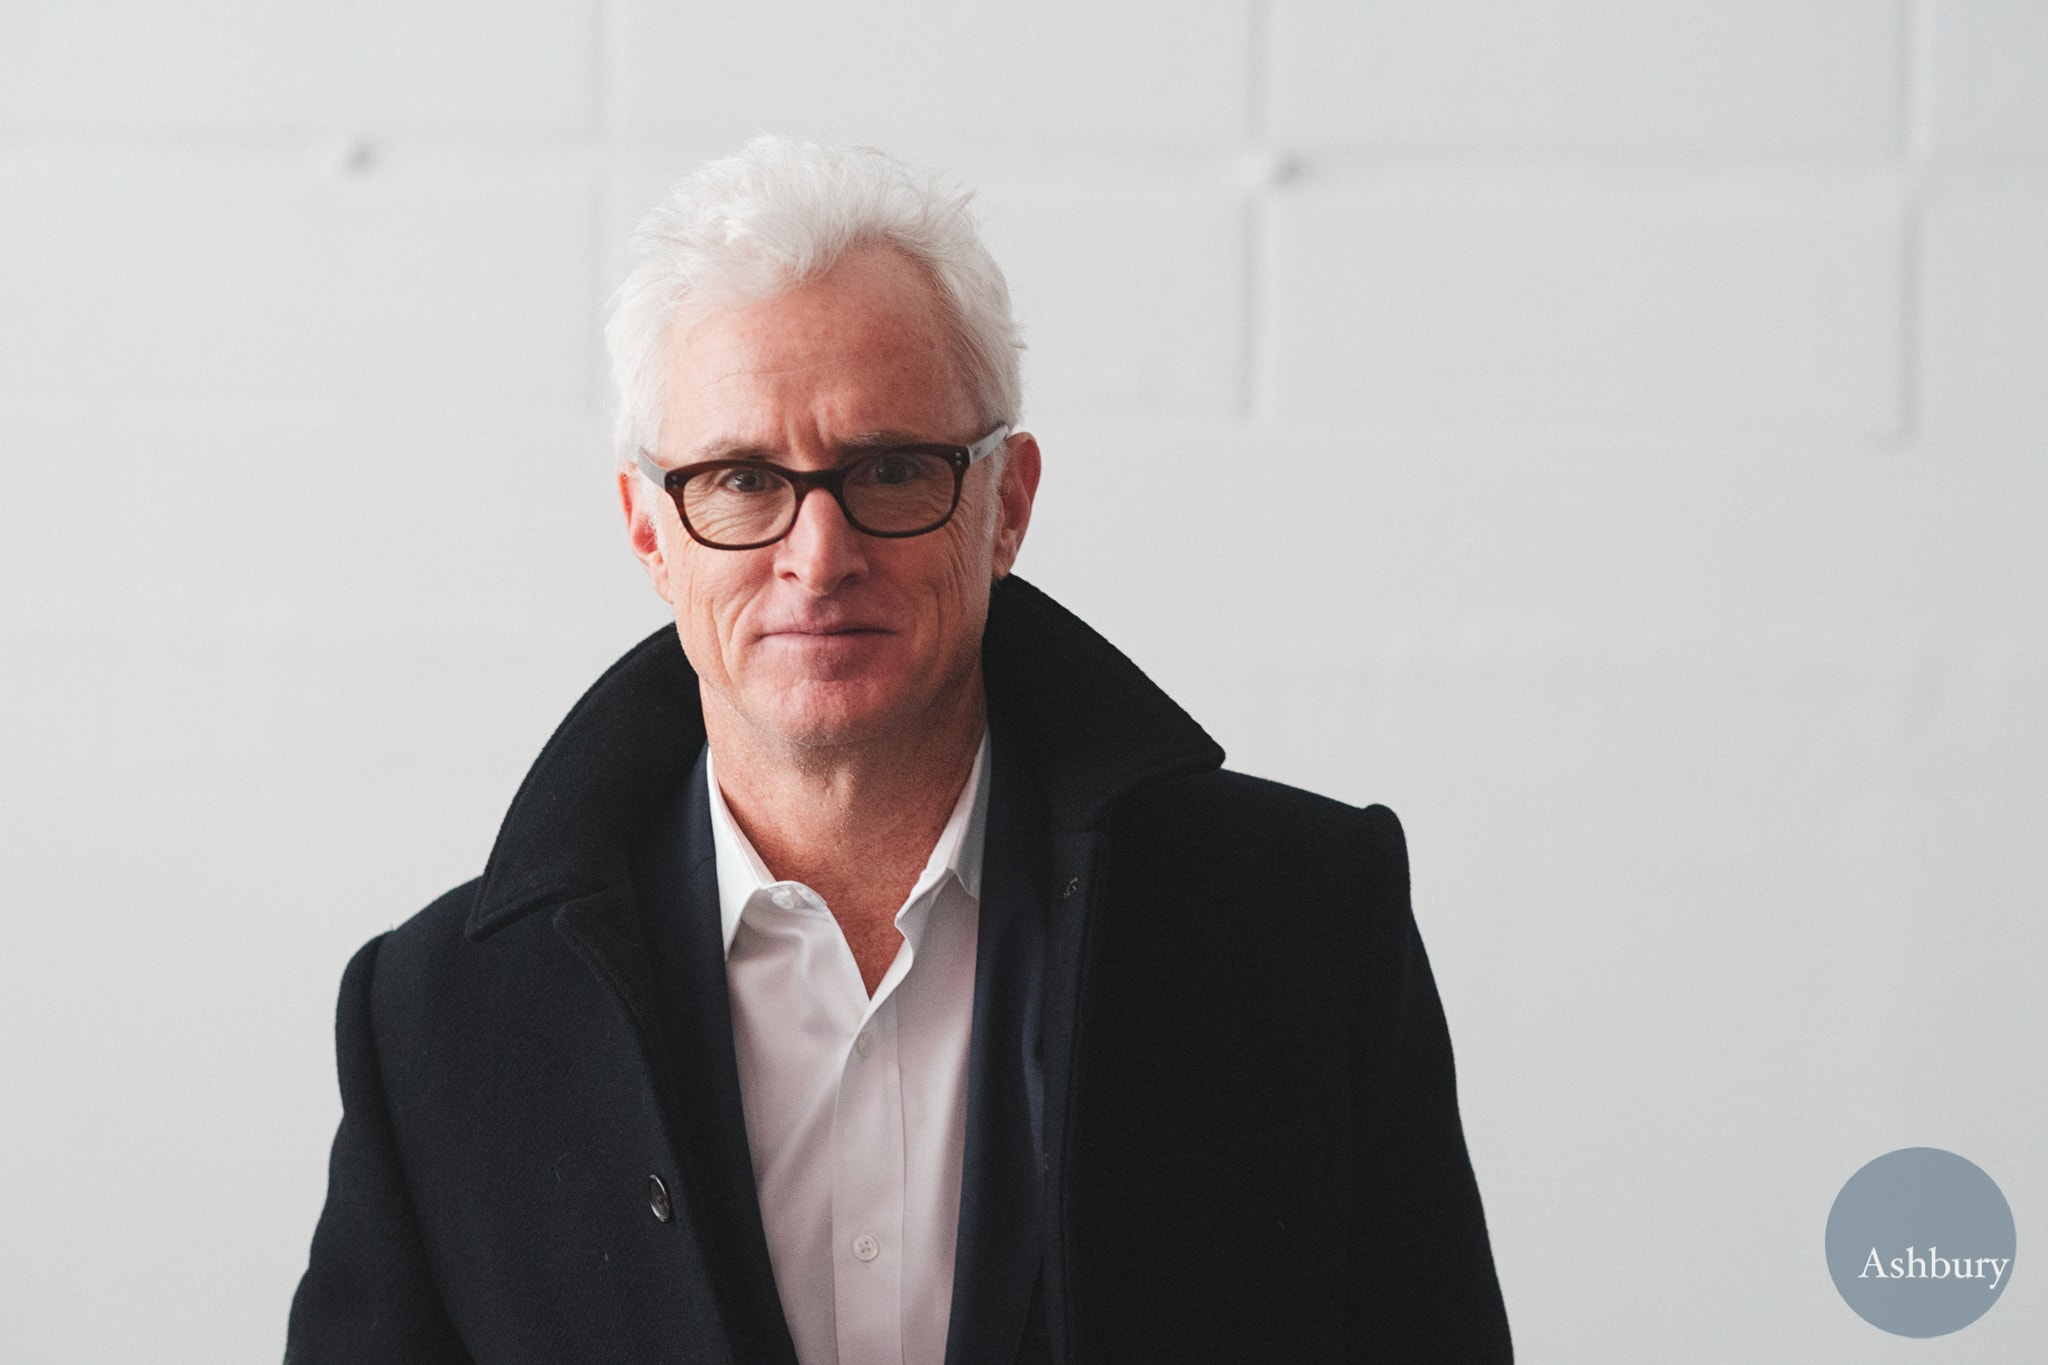 John Slattery Background